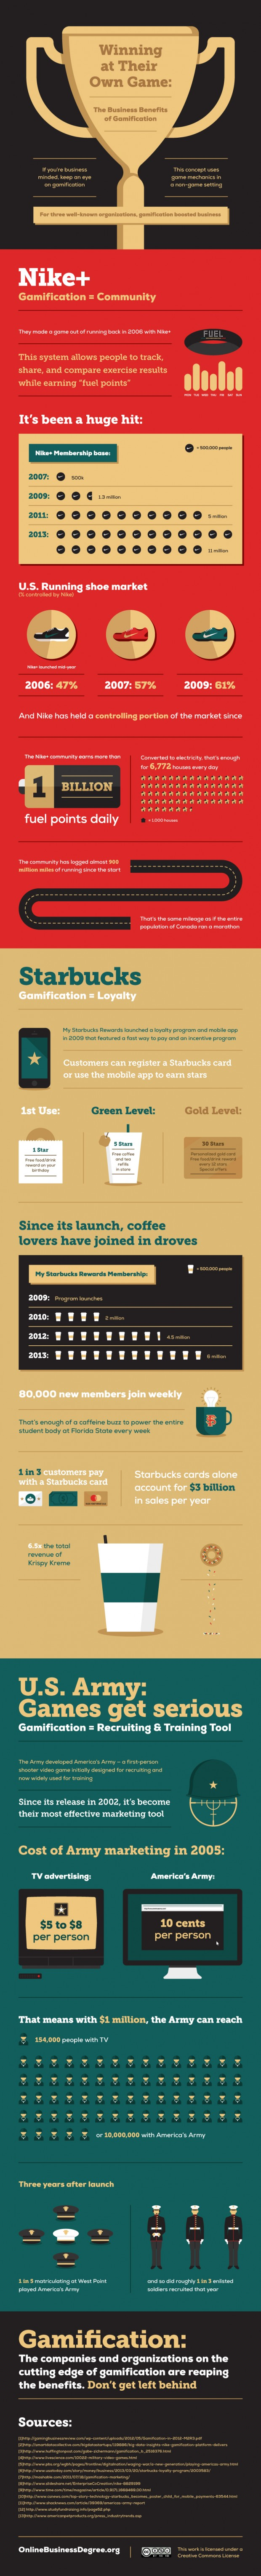 The-Business-Benefits-of-Gamification-Infographic-620x6116